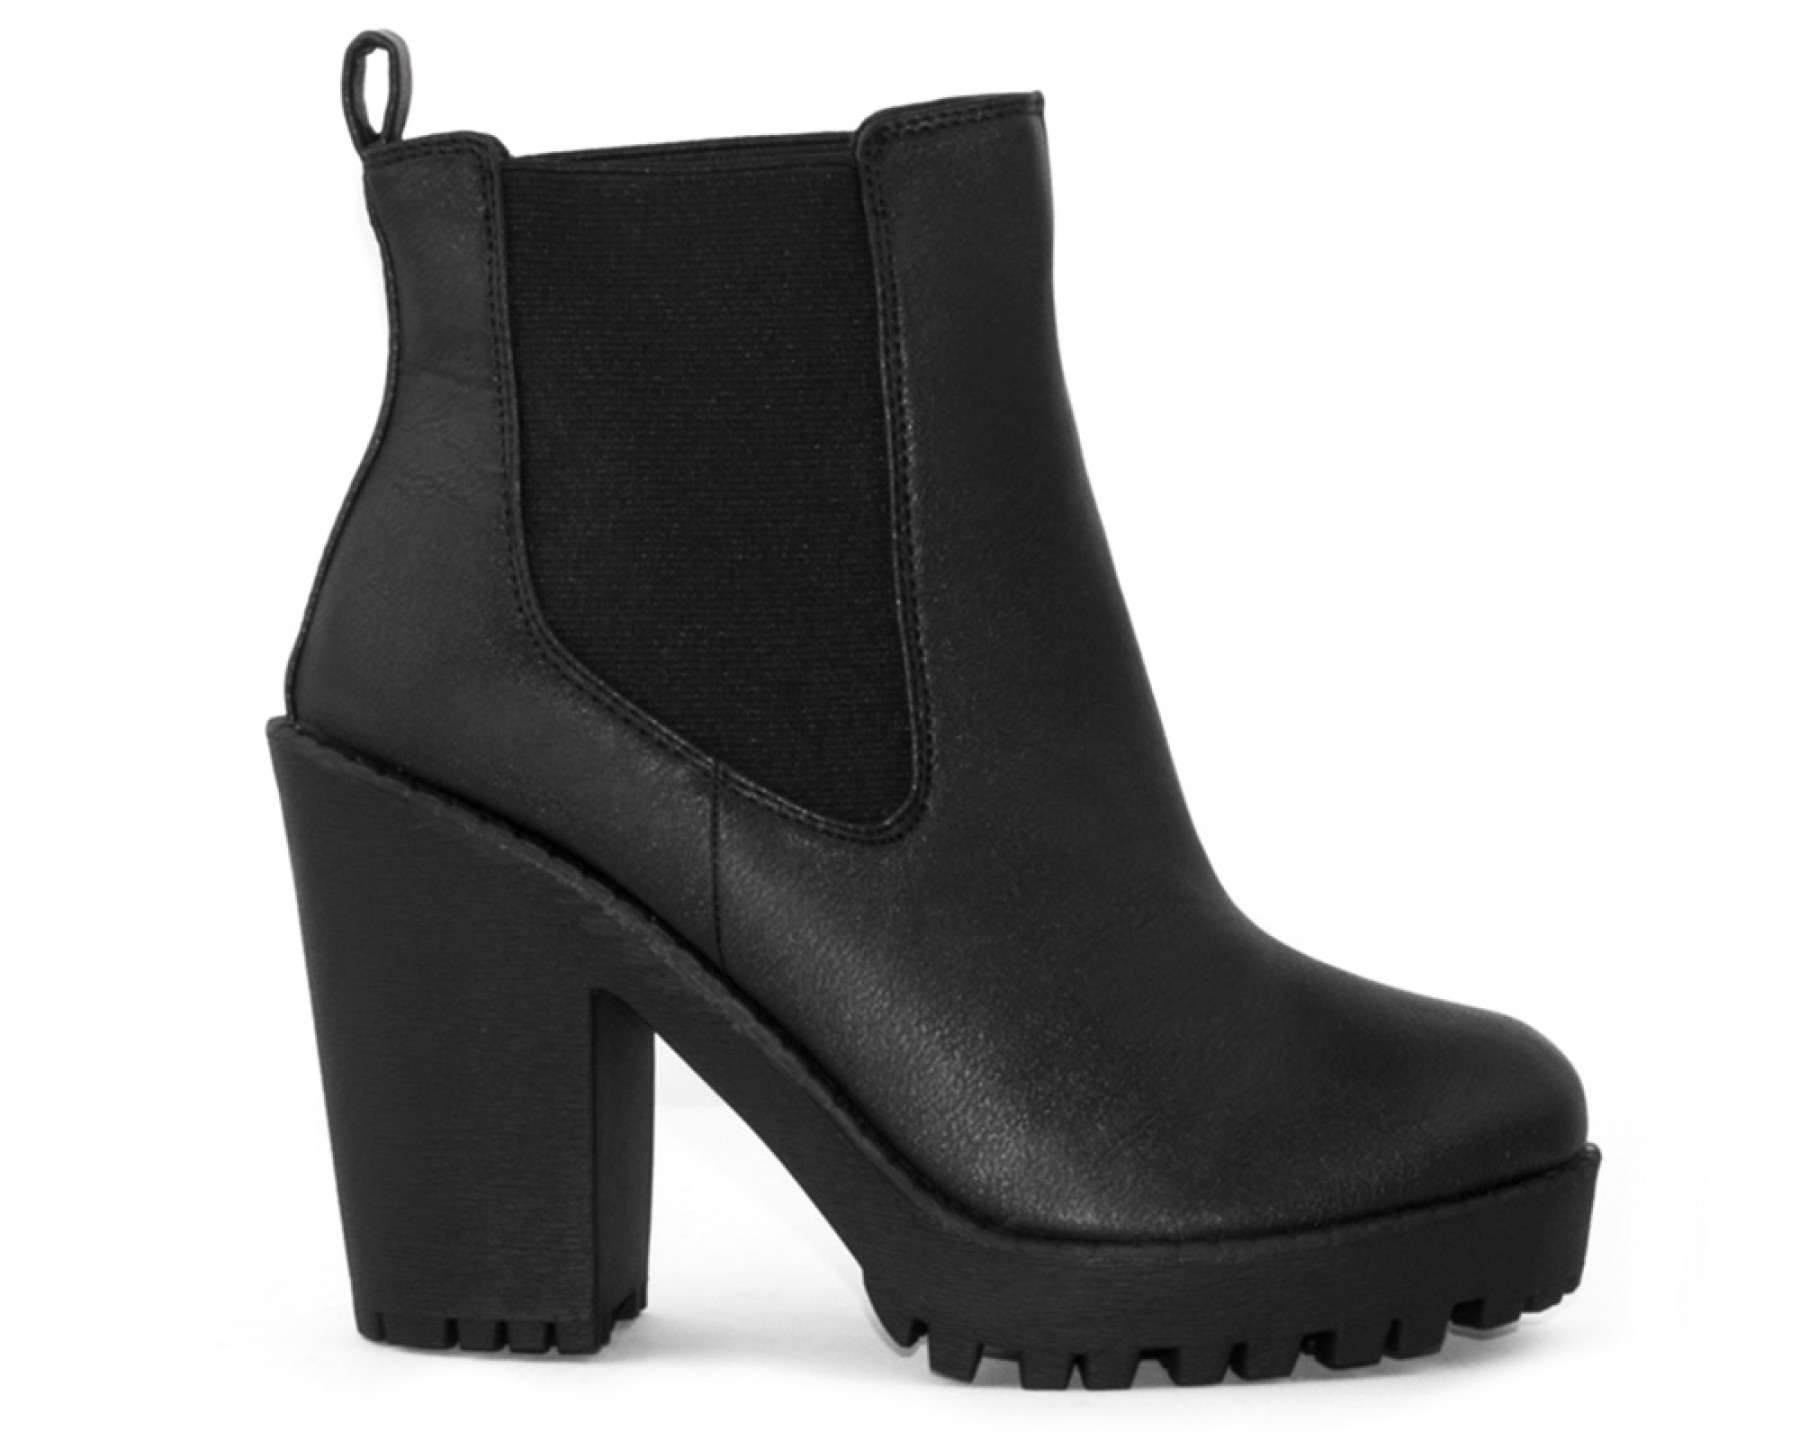 dirtyinstalzonevx6.ga: platform chelsea boots. From The Community. Meeshine Women's Ladies Black Chunky Heel Chelsea Western Boots Side Elastic Panel Pull On Casual Leather Ankle Boots. by Meeshine. $ $ 9 99 Prime. FREE Shipping on eligible orders. Some sizes are Prime eligible. out of .